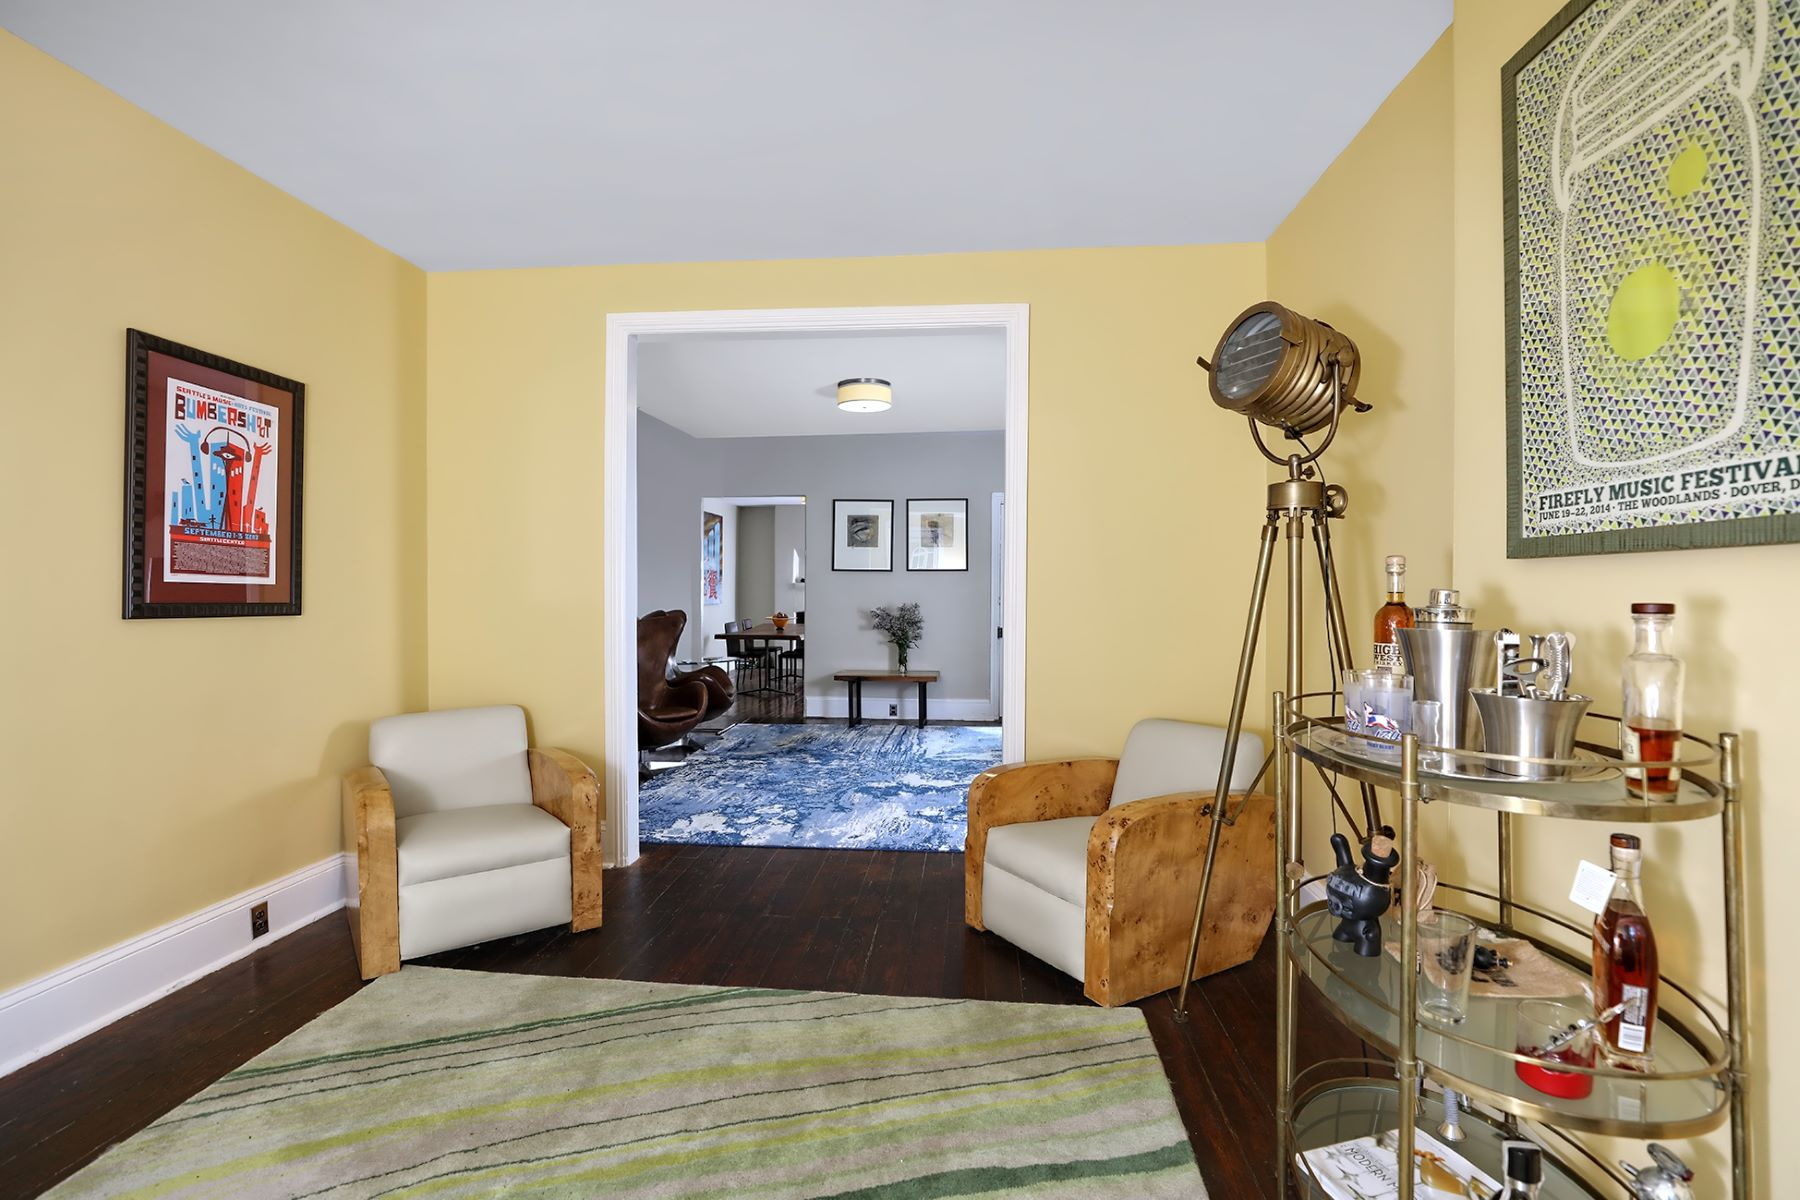 Additional photo for property listing at Up-to-date With Floor Space Aplenty 39 Delaware Avenue, Lambertville, New Jersey 08530 United States